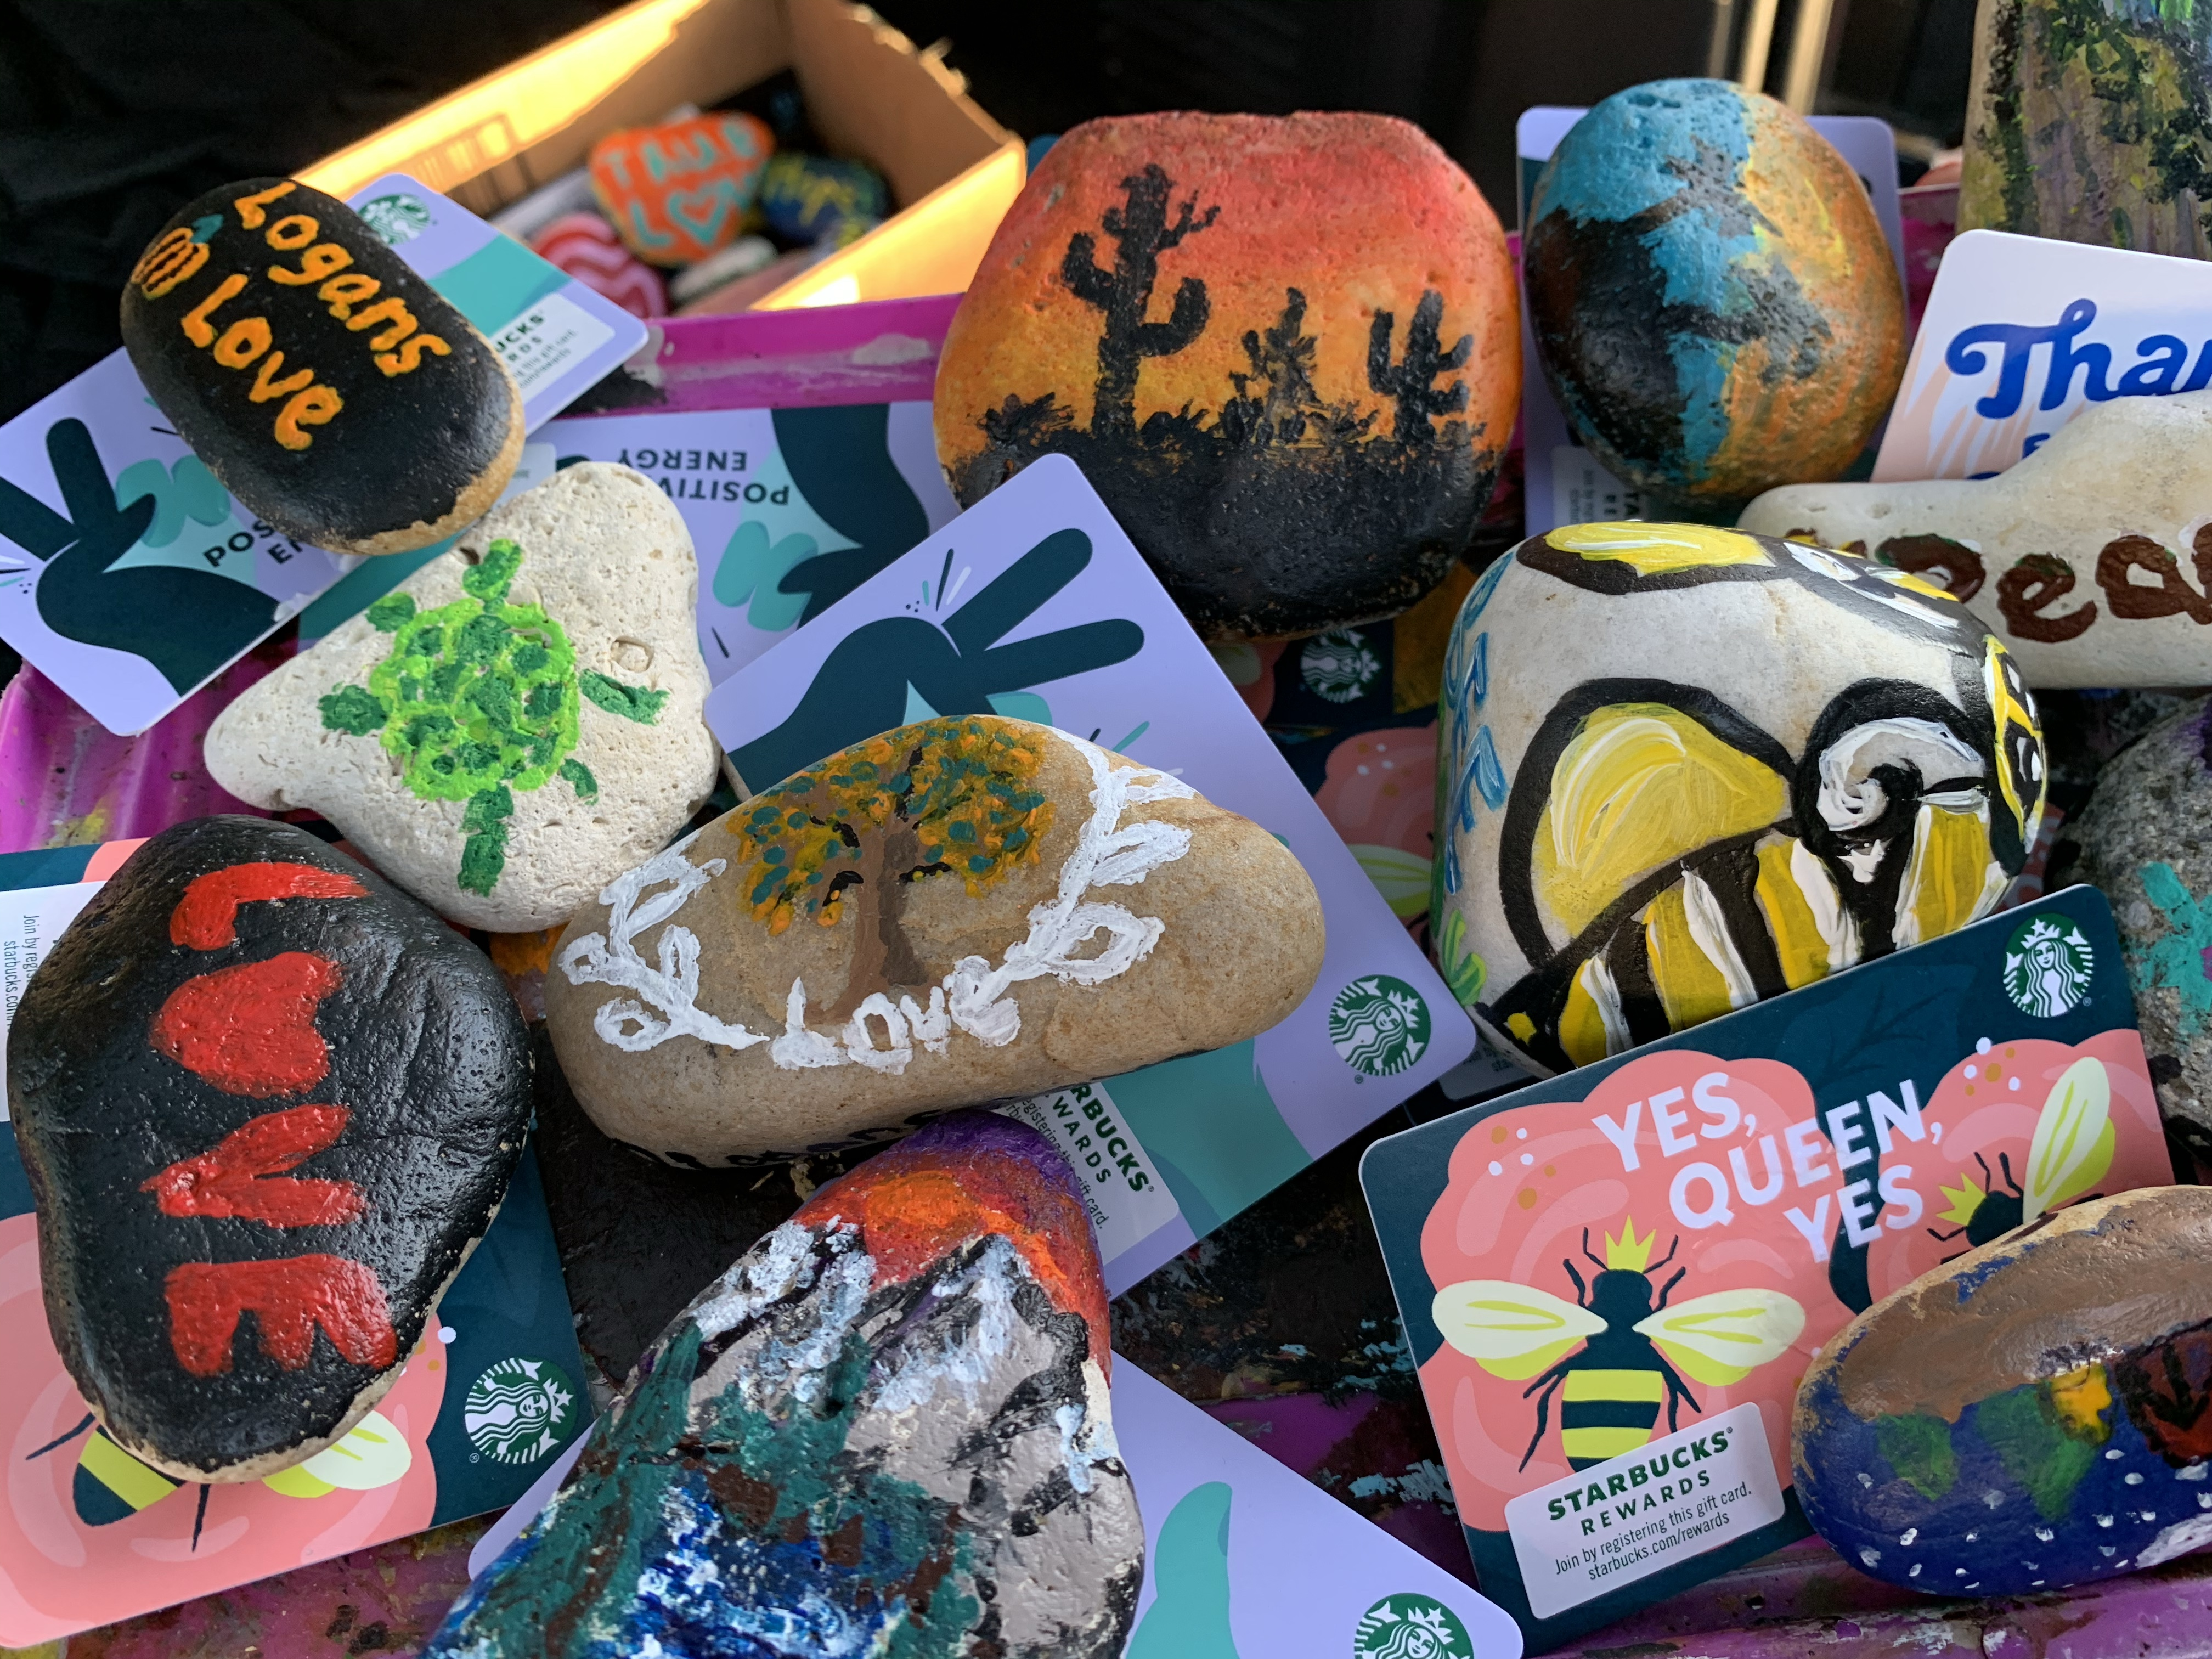 Painted rocks with artwork and inspirational messages